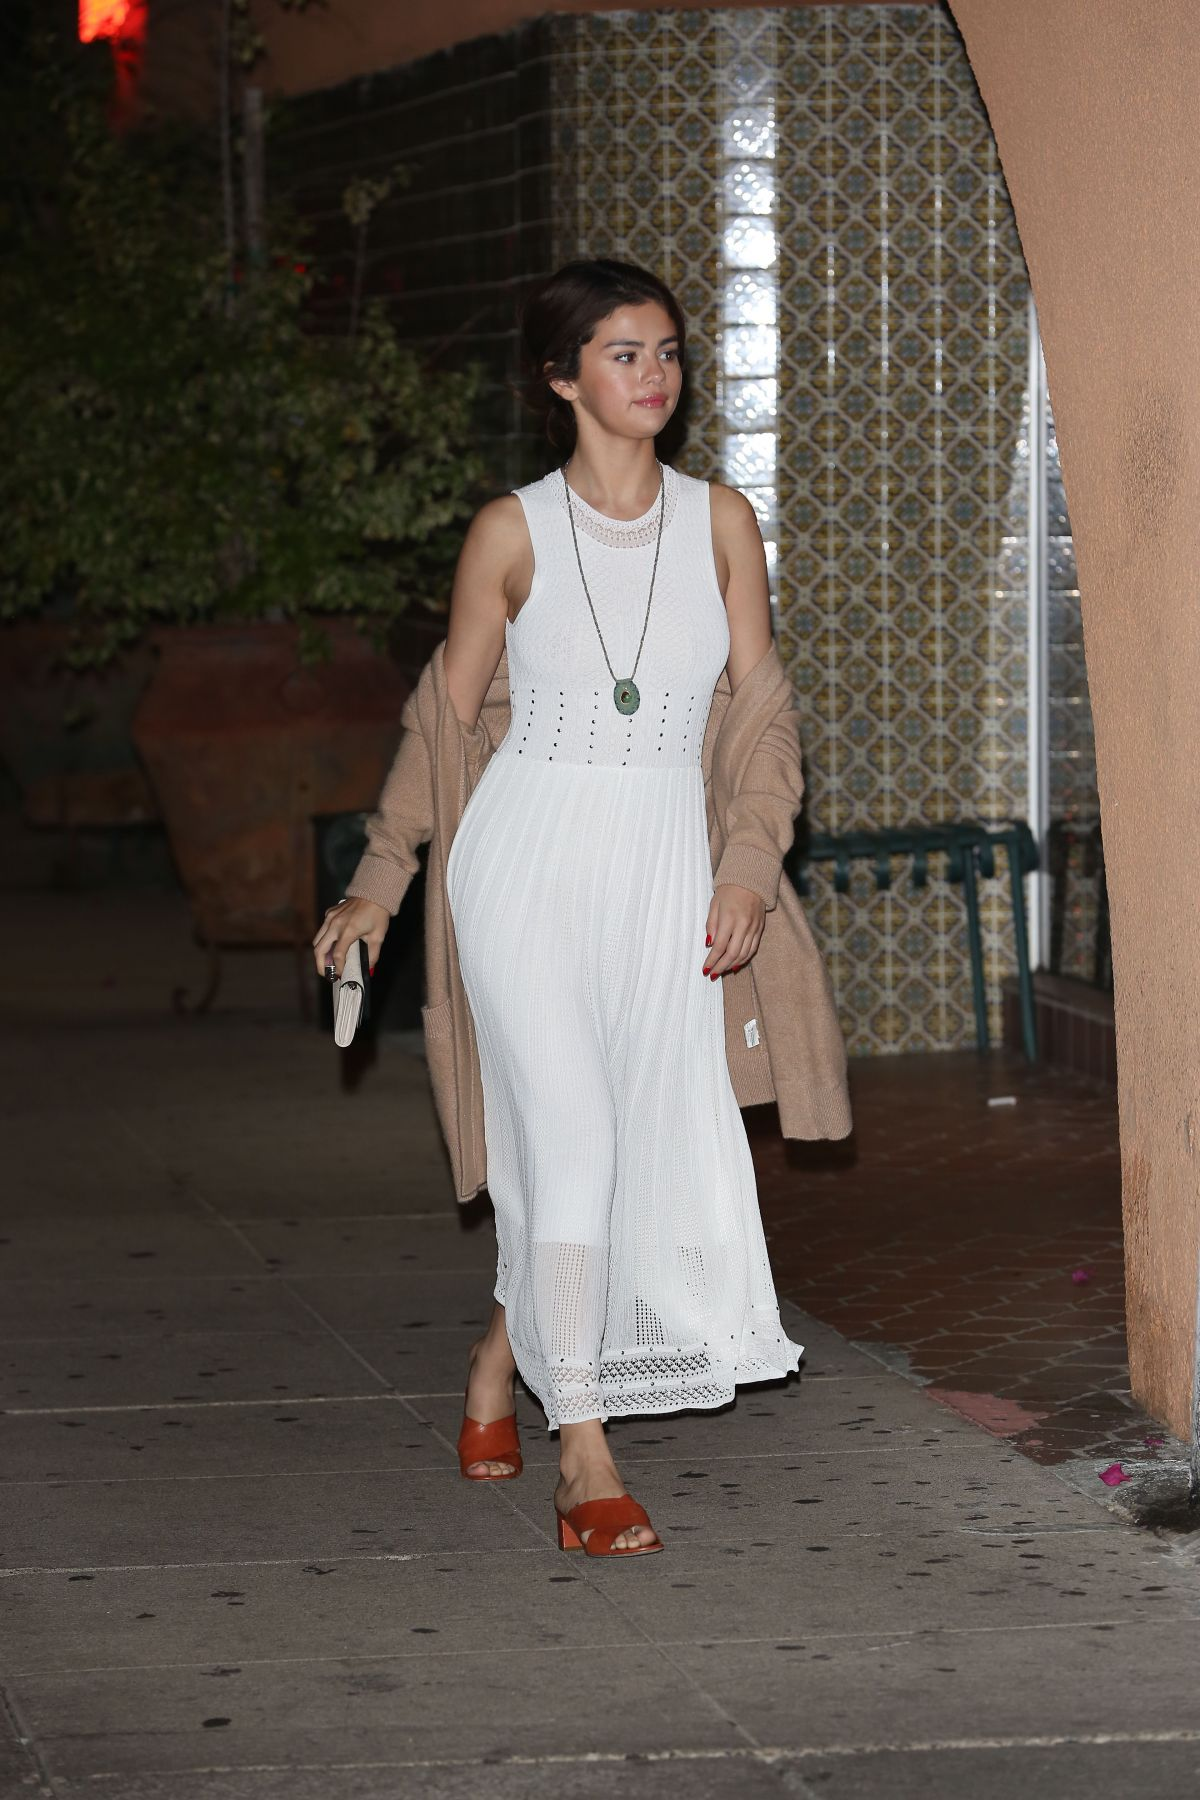 f16833b0aa4b Selena Gomez Steps out for a night out wearing a white dress in LA ...